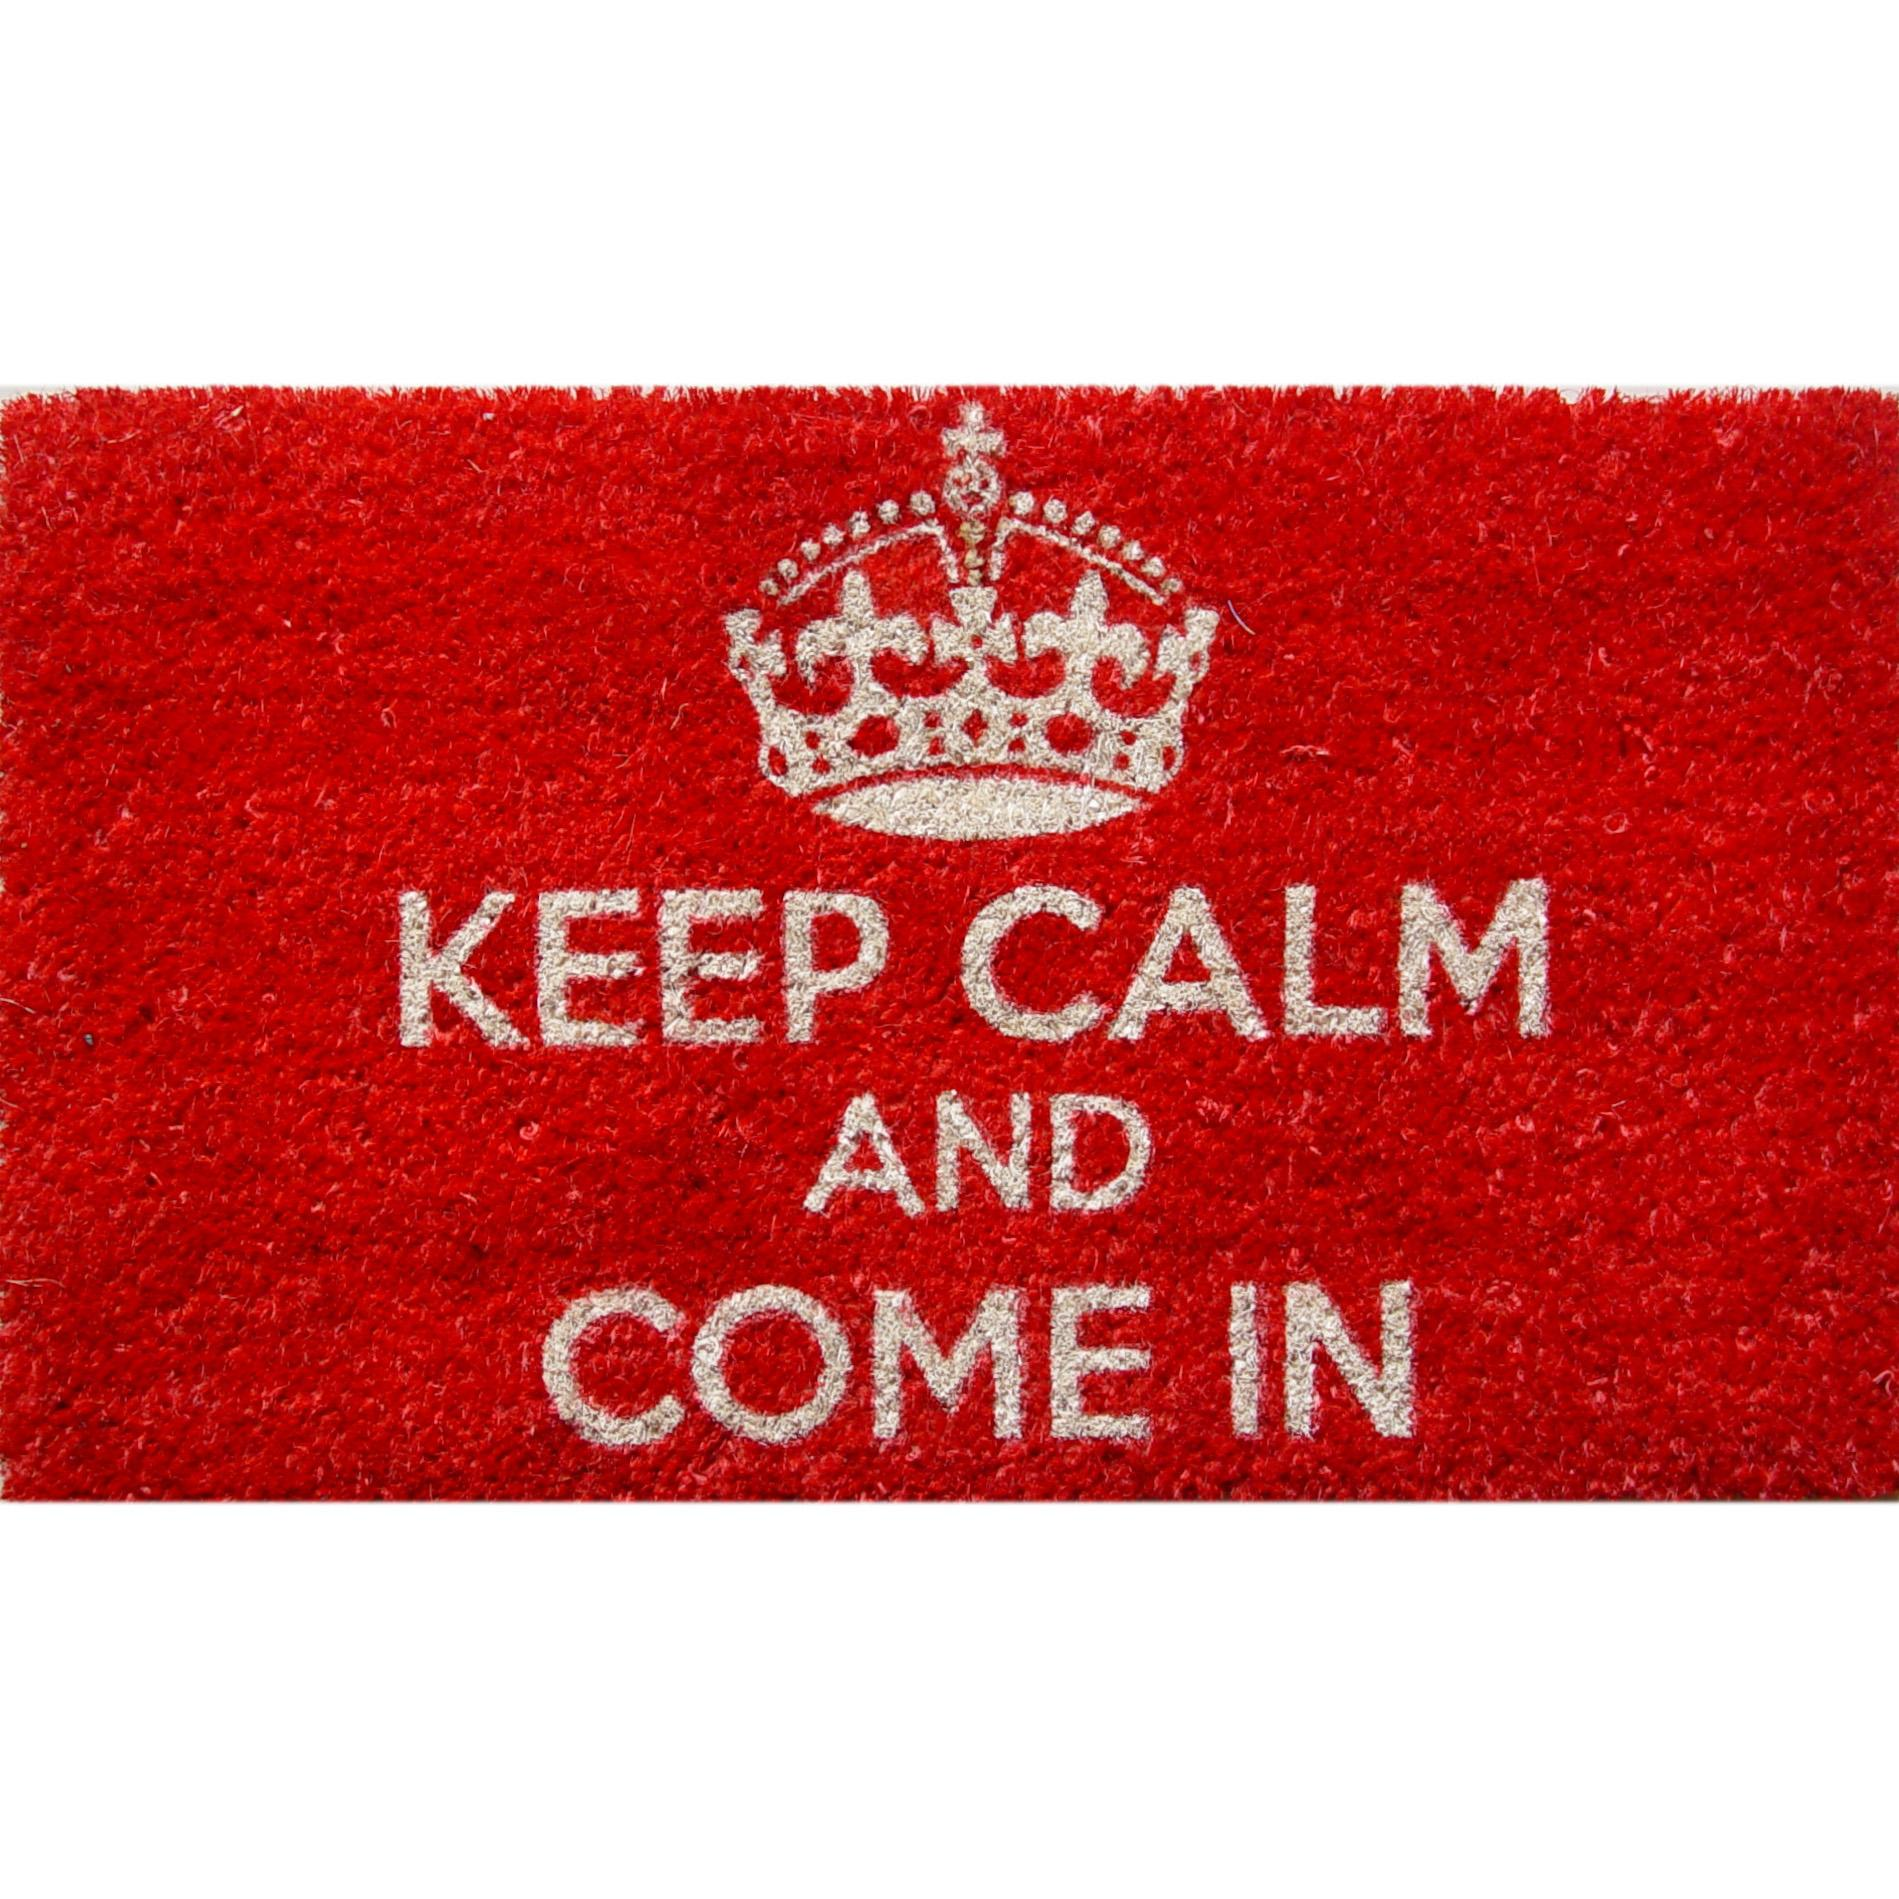 40x60cm Non Slip Door Mat Carpet Floor Rug Water Keep Calm PVC Coir Decor Room Living Memory Foam Entrance HDB